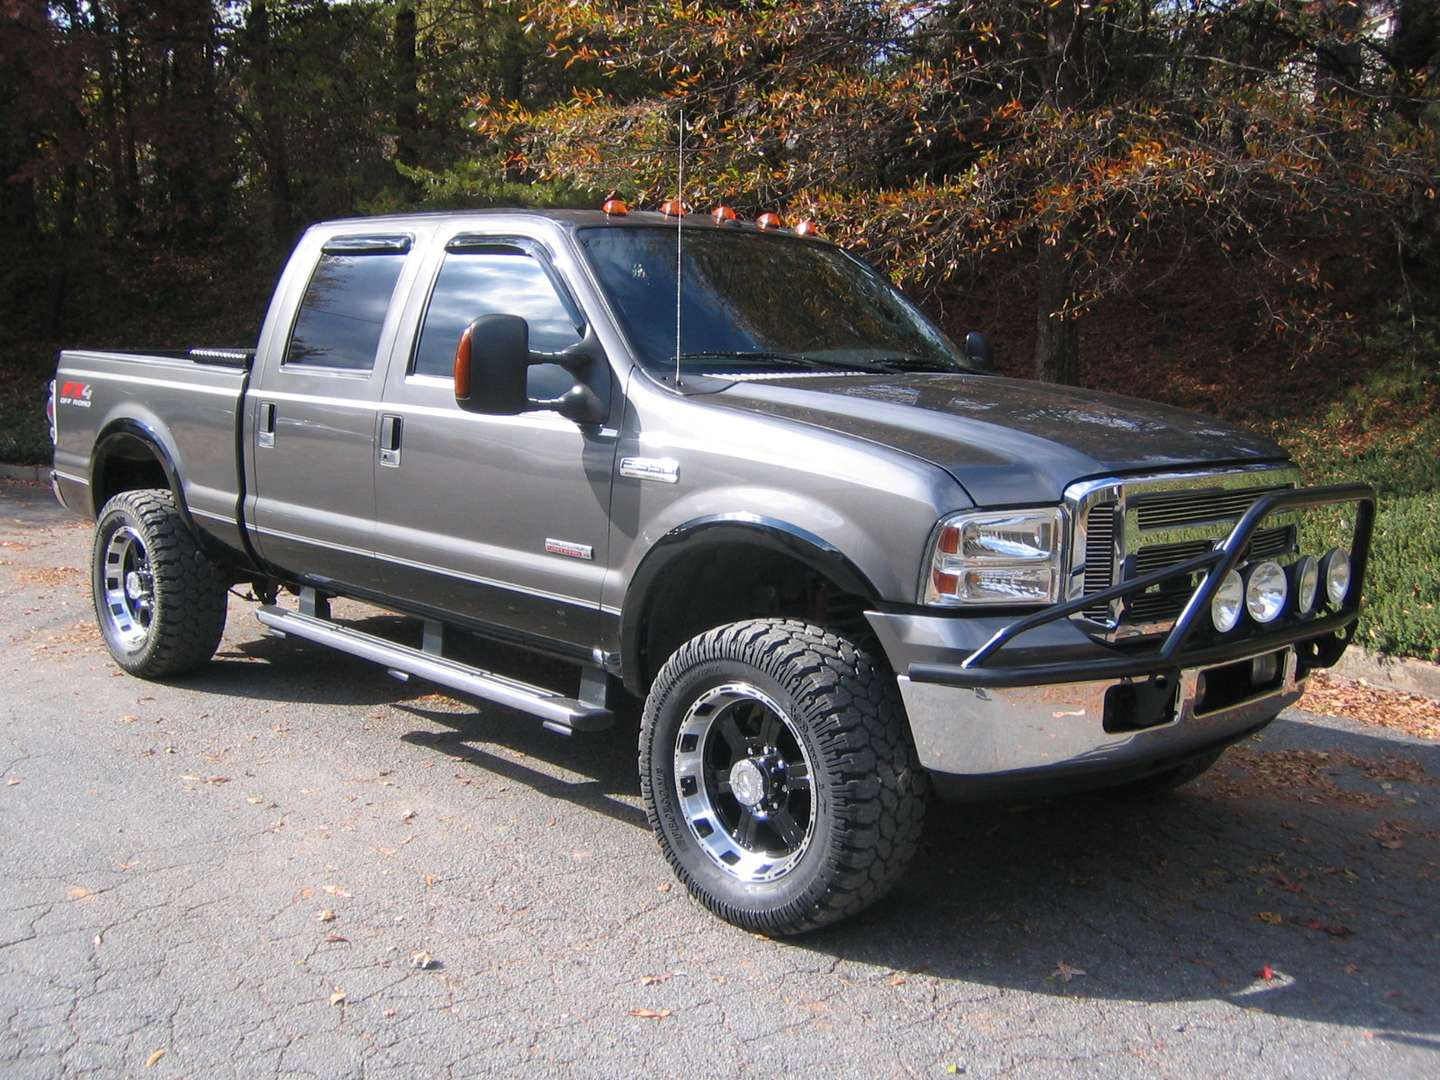 Ford F-350 Super Duty #9752703